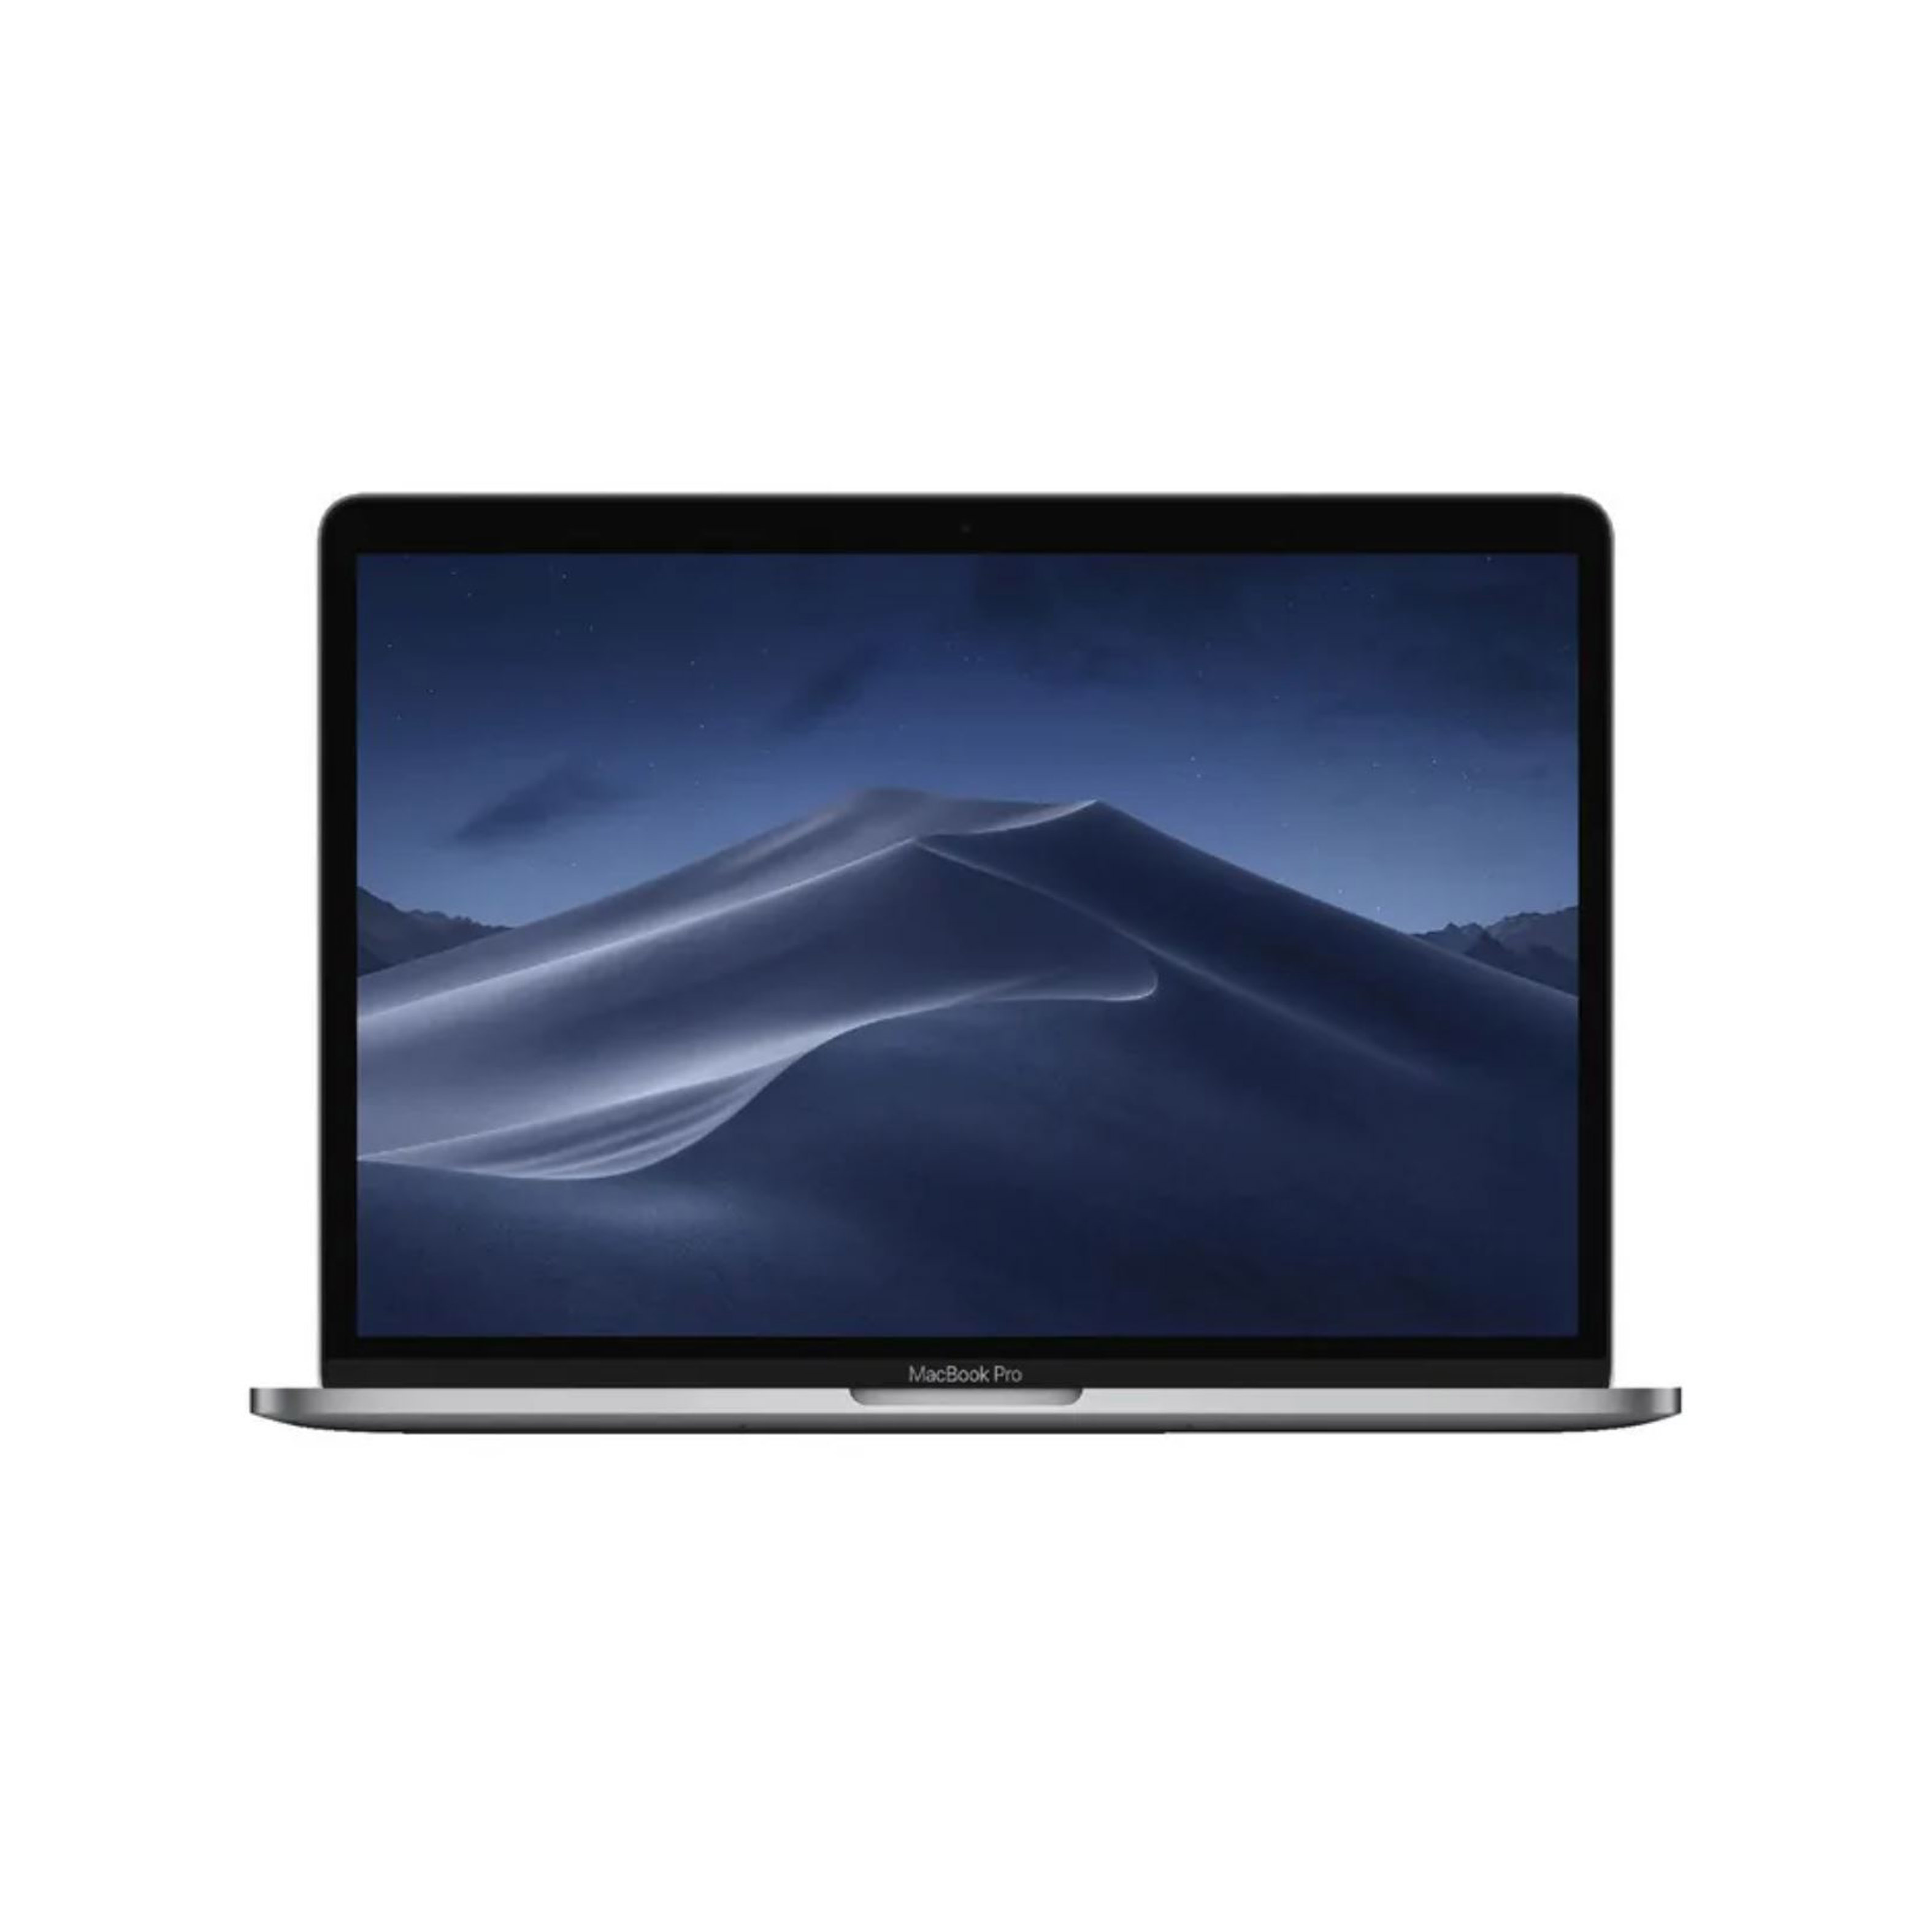 Apple 13 inch MacBook Pro with Touch Bar 3.1GHz Dual Core Intel i5 256GB Space Grey (MPXV2X/A)